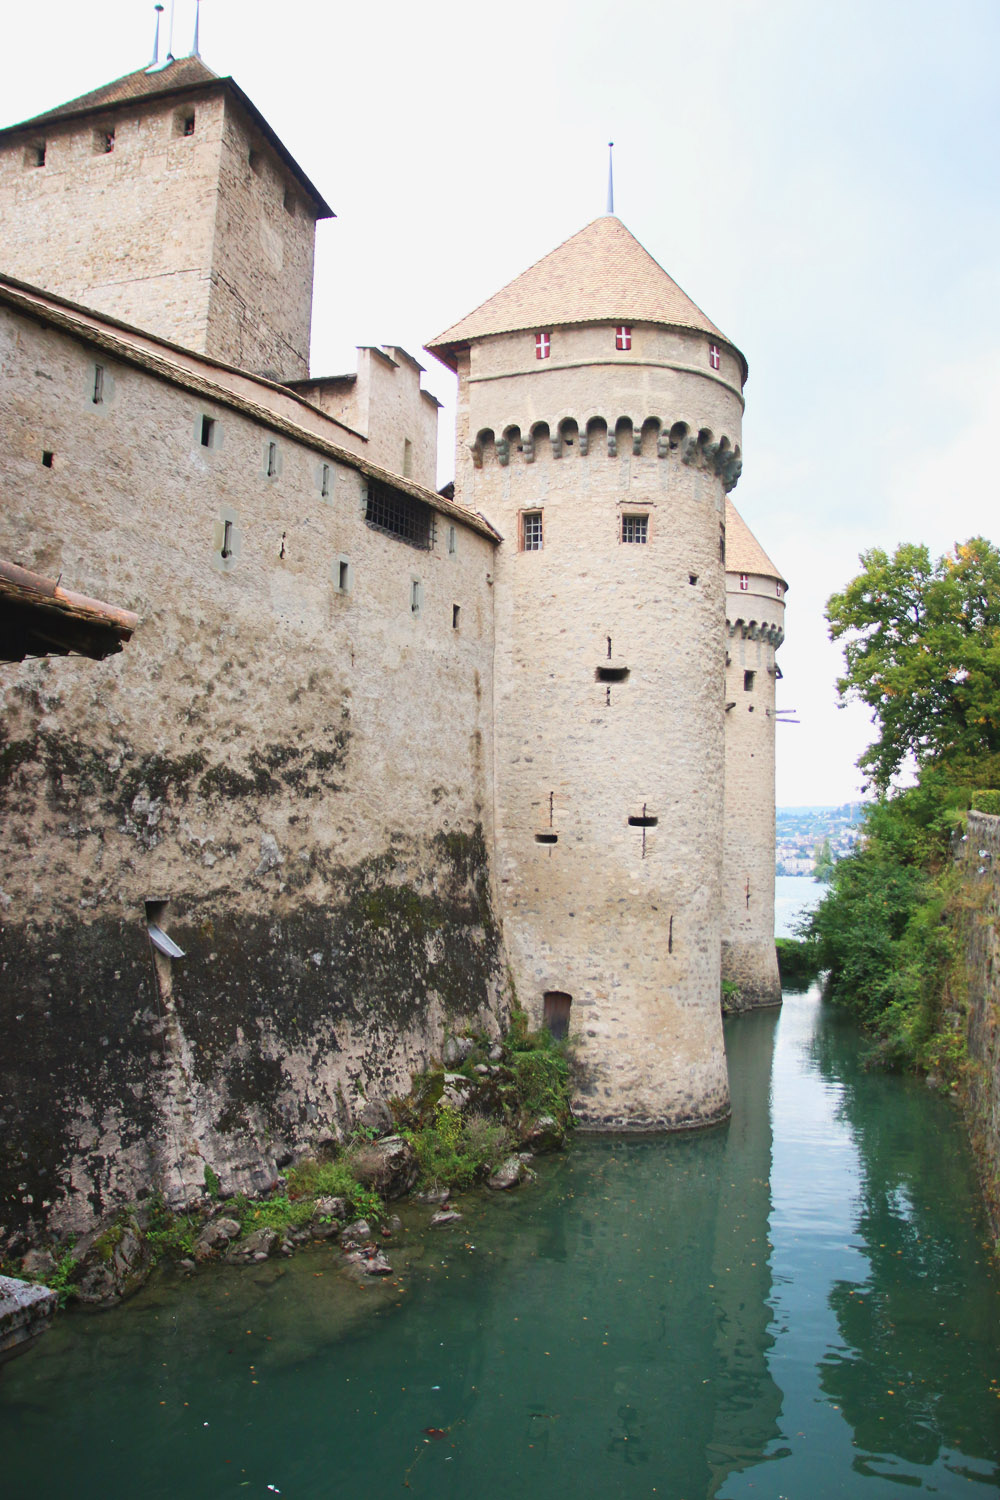 Chateau de Chillon, Lake Geneva - Switzerland